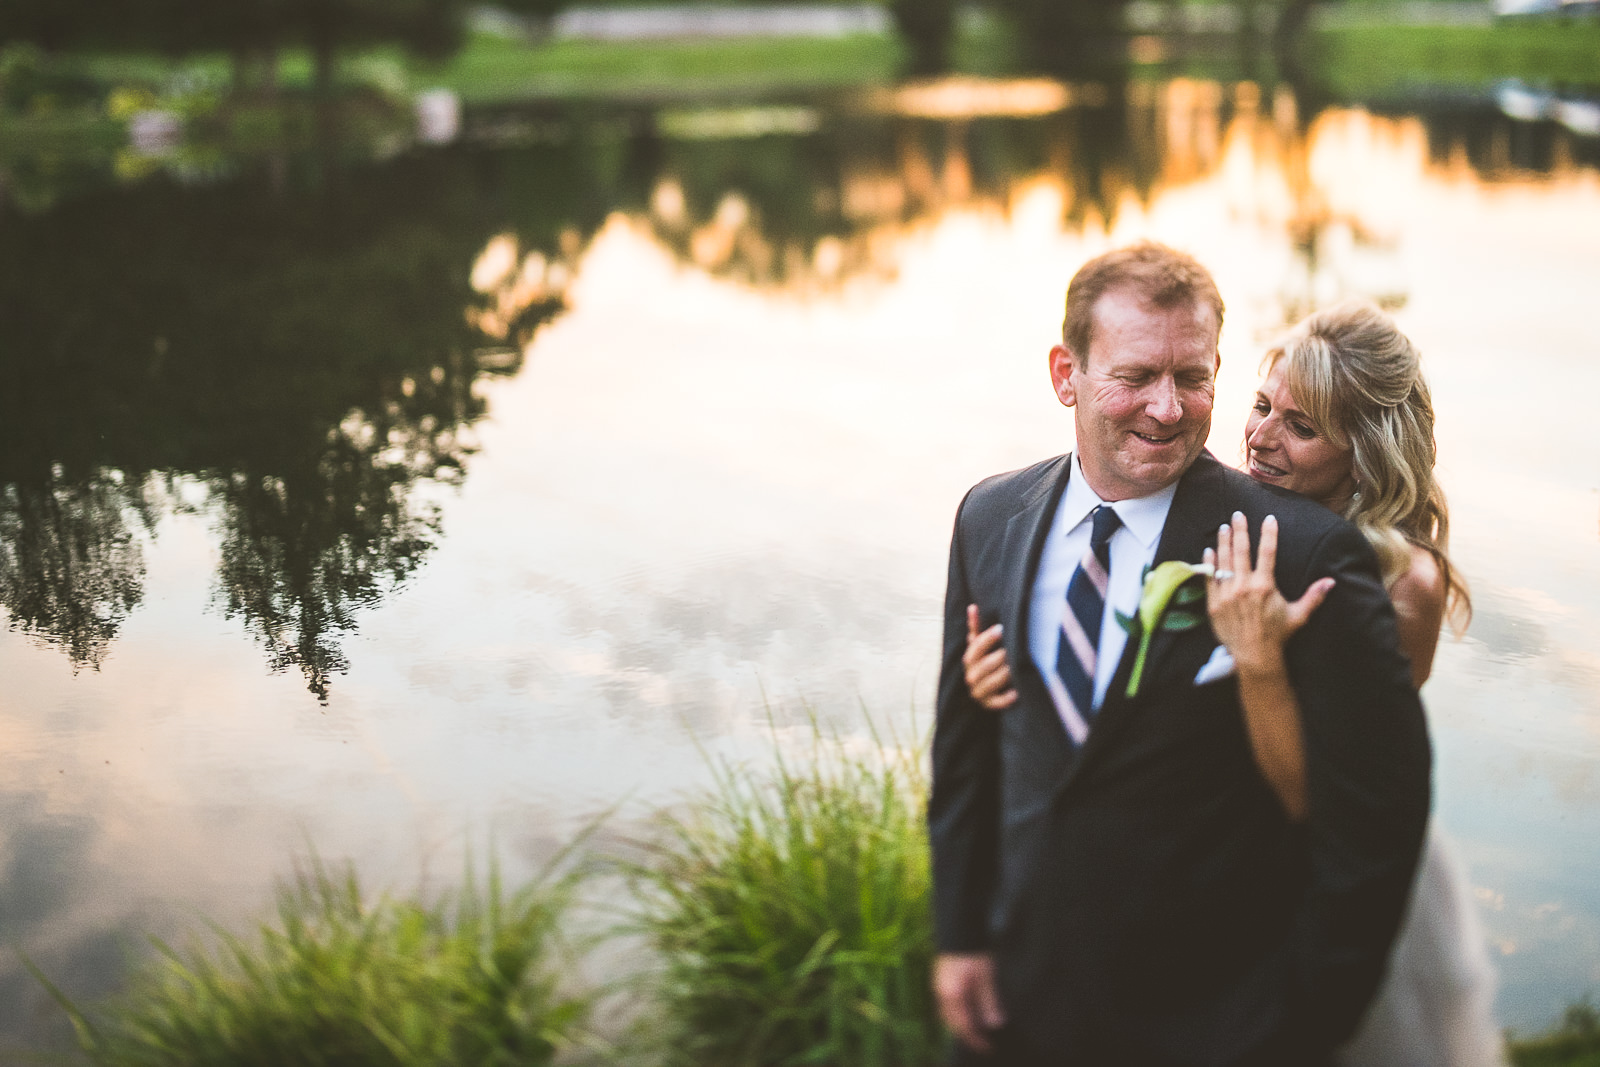 52 happy bride and groom at wedding - Karen + Scott // Fishermens Inn Wedding Photographer Elburn Illinois